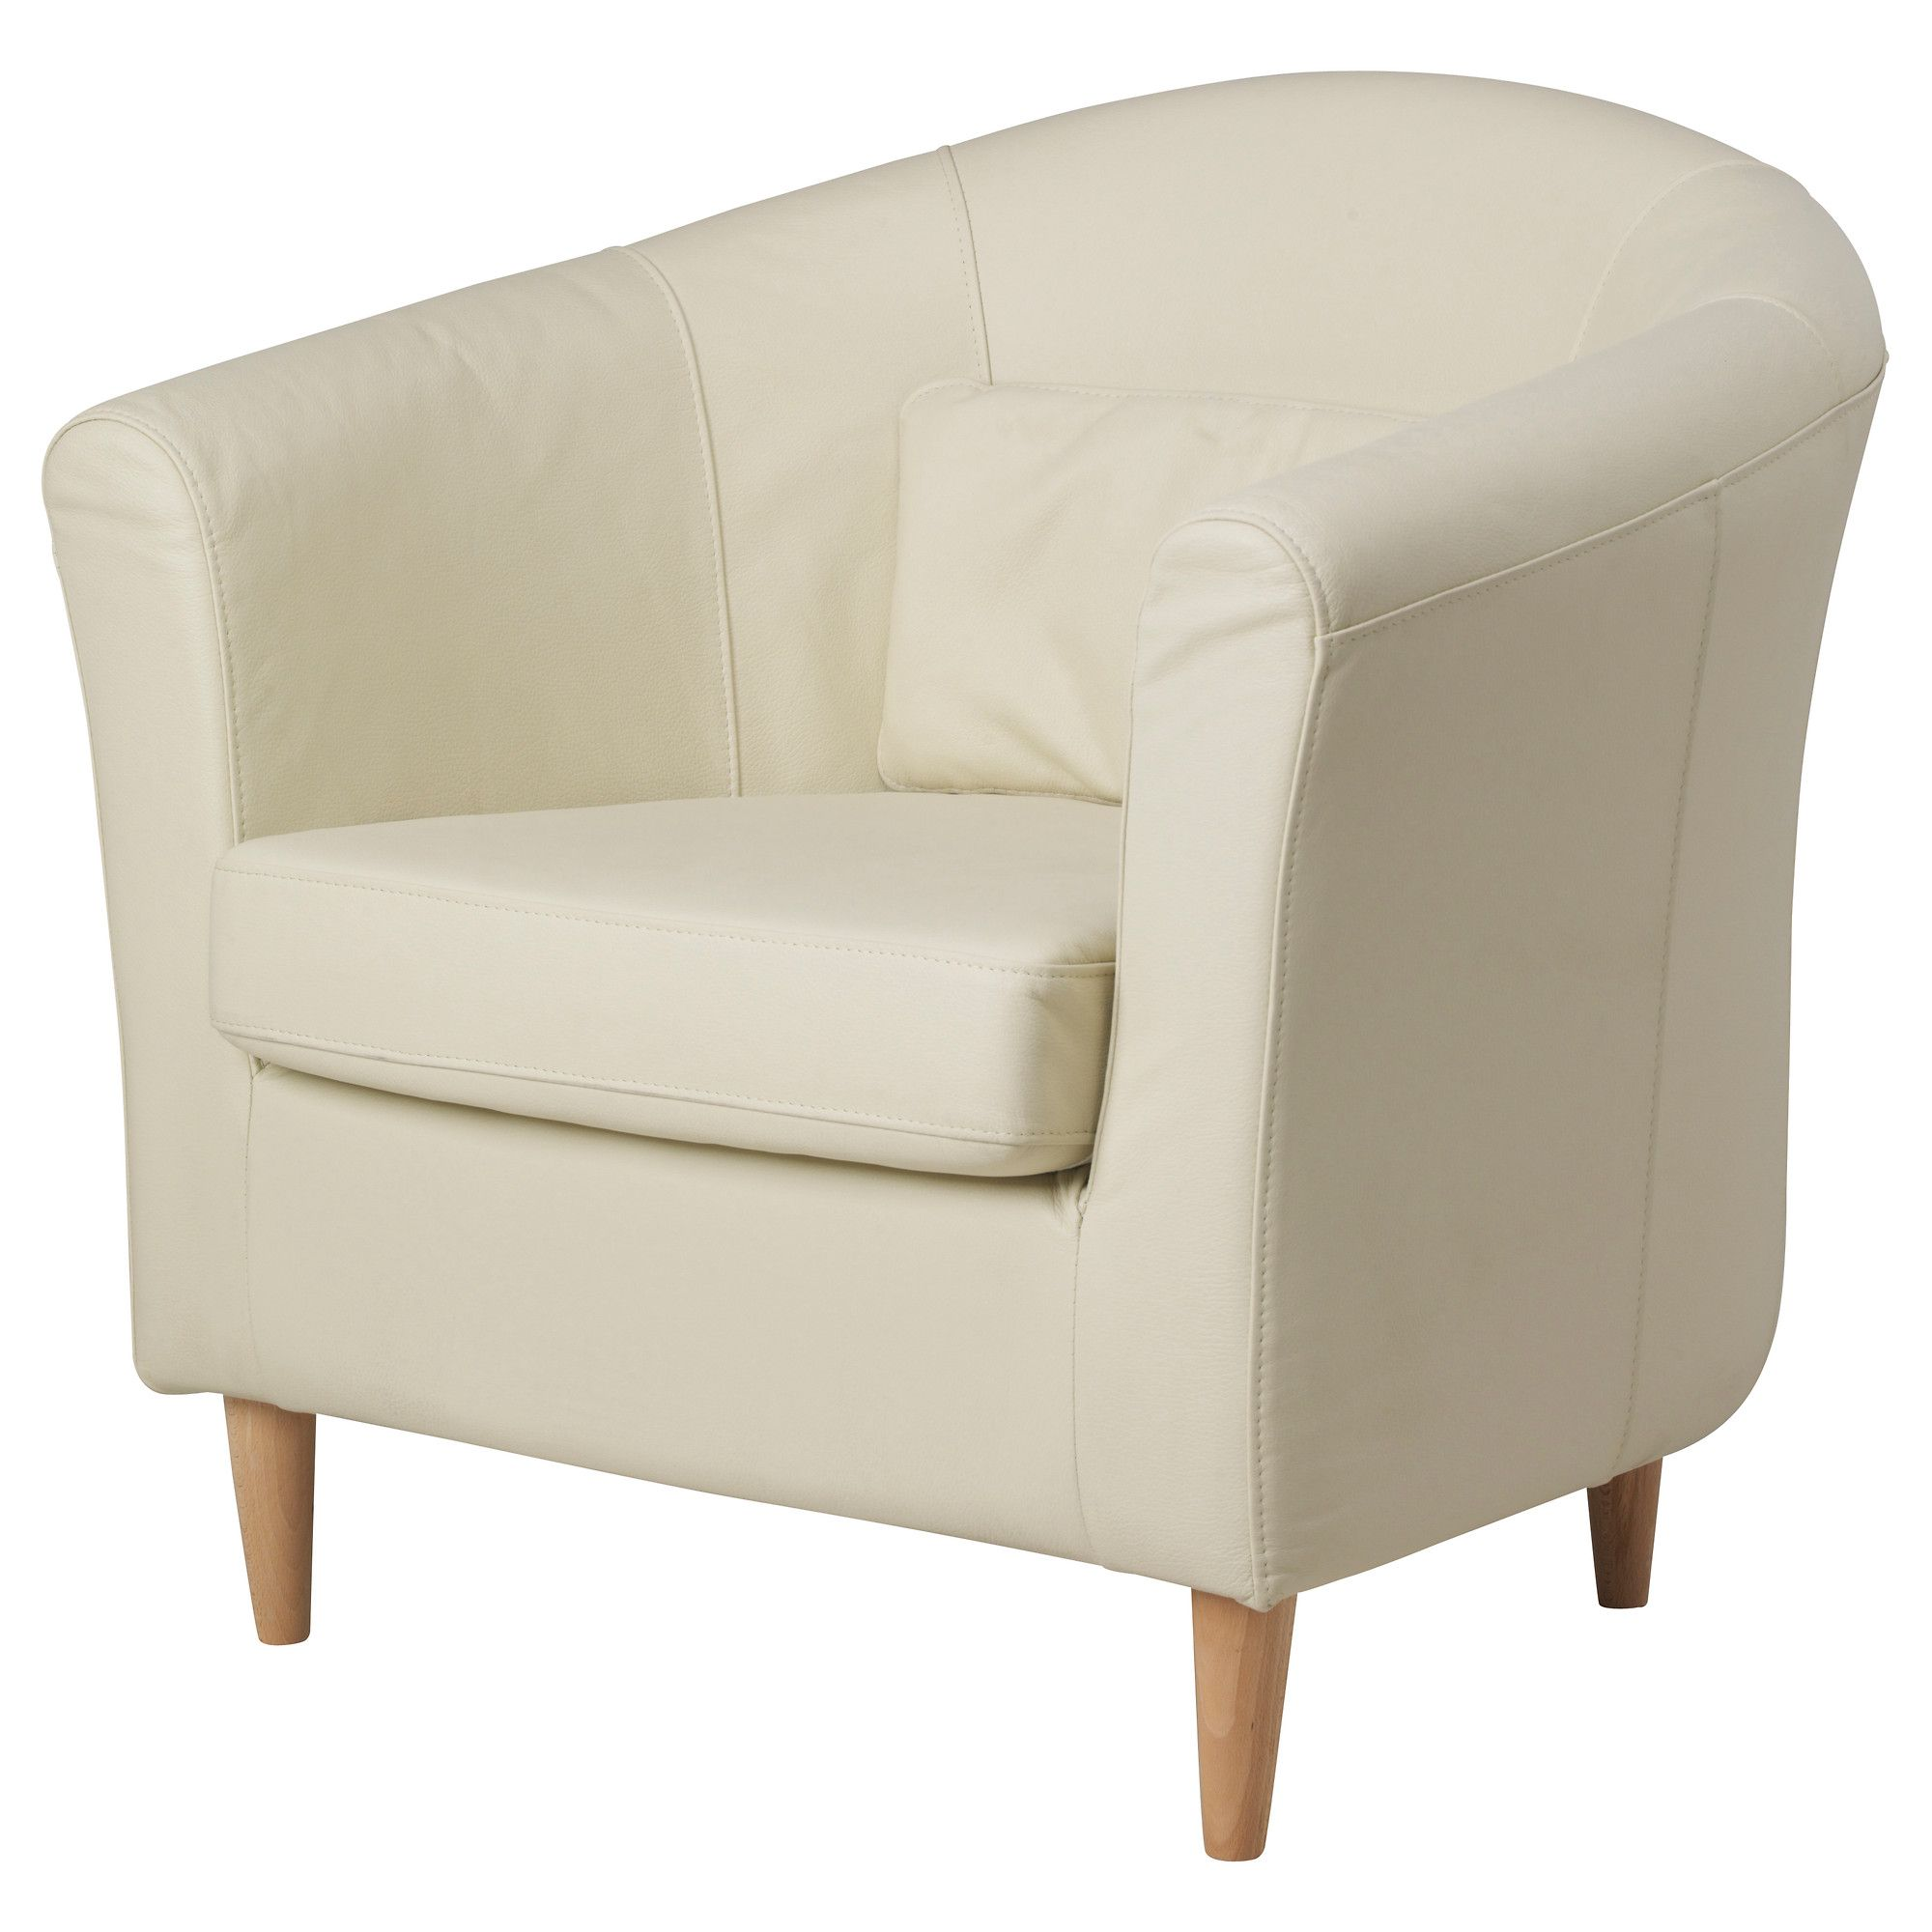 Ikea Tullsta Tullsta Chair - Robust Off-white - Ikea | North End Flat